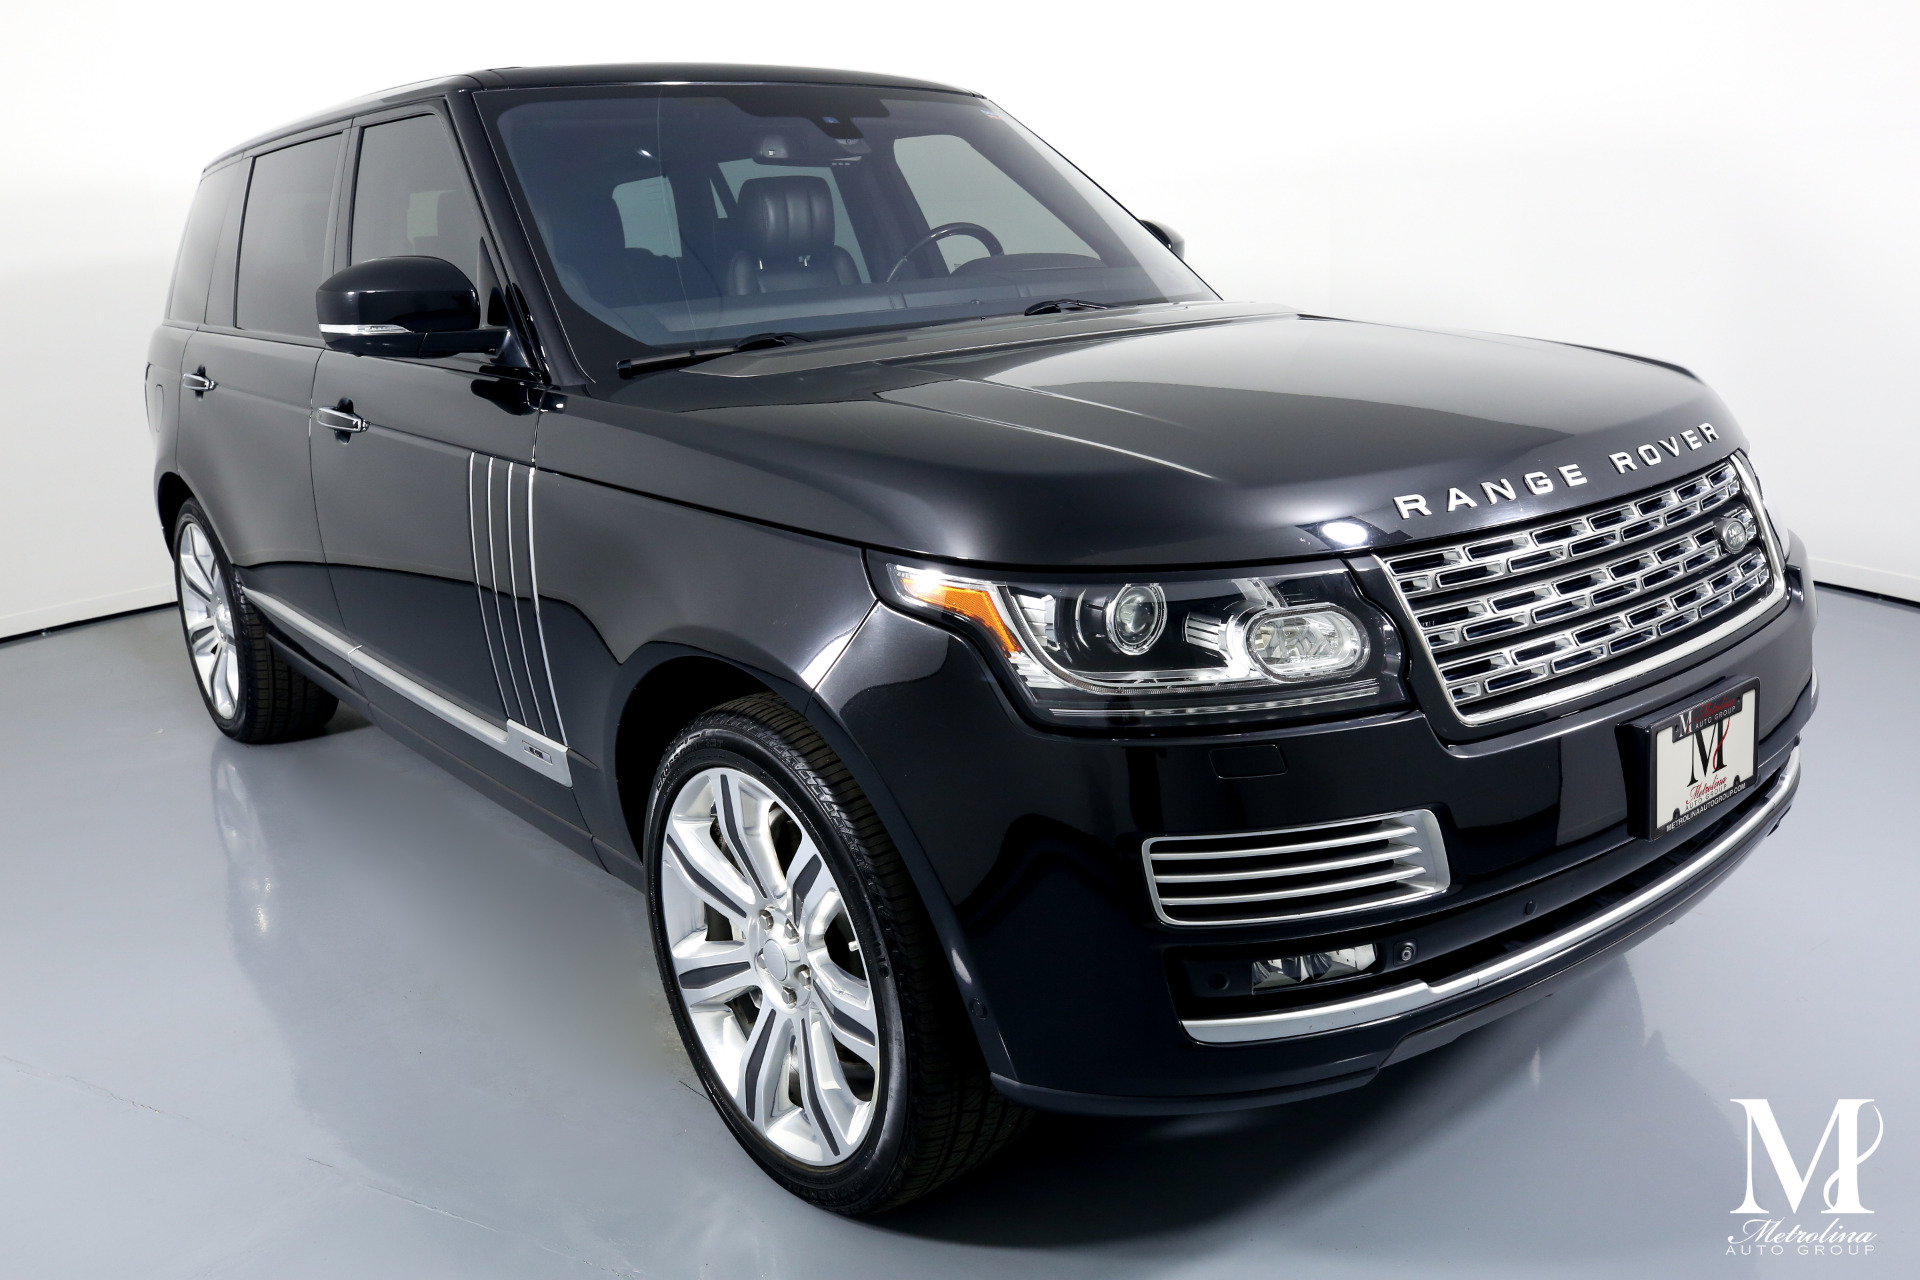 Used 2015 Land Rover Range Rover Autobiography Black LWB for sale $74,996 at Metrolina Auto Group in Charlotte NC 28217 - 2